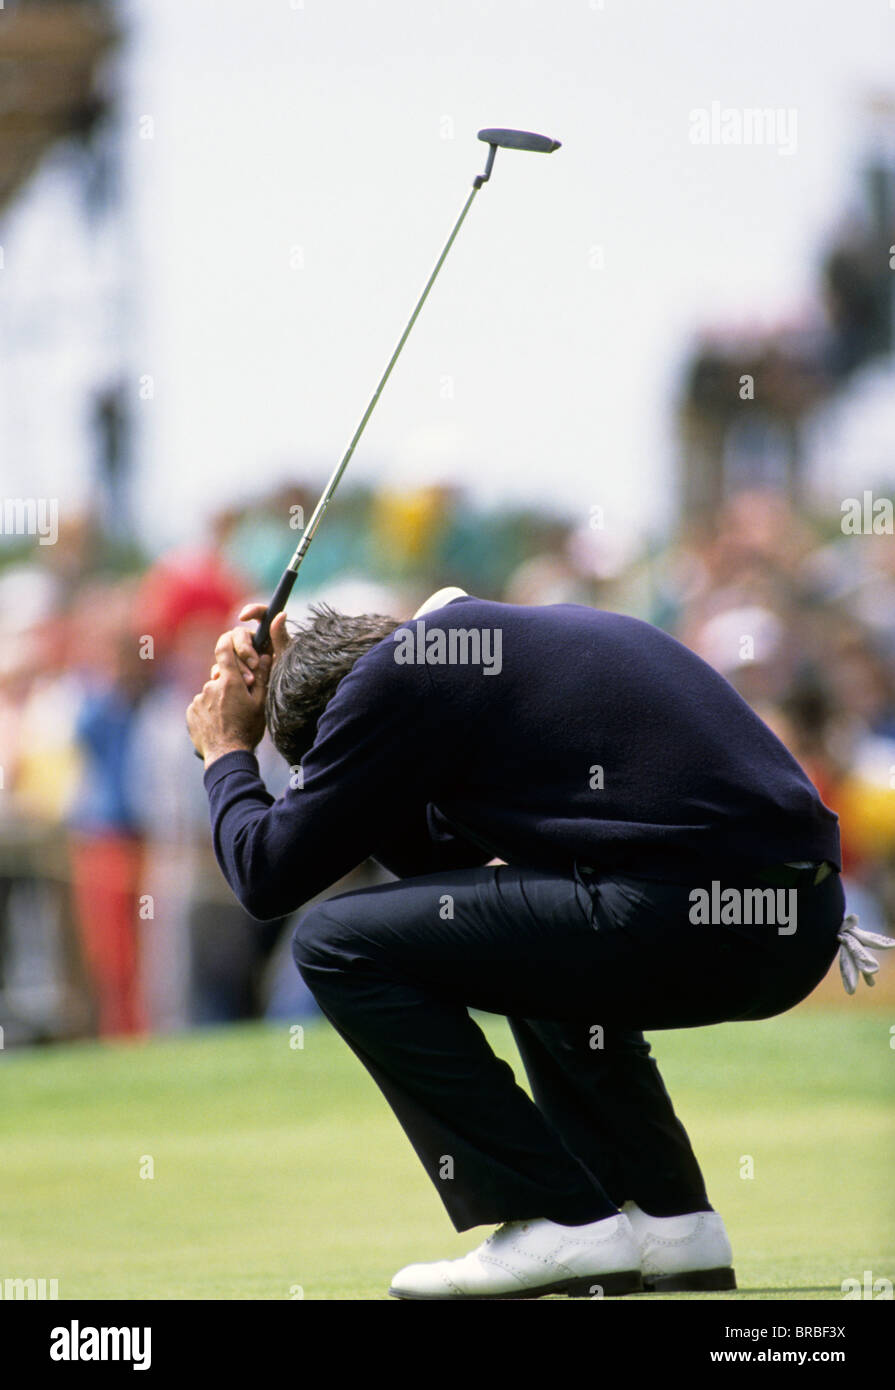 Golf player crouched on the green having missed his shot - Stock Image